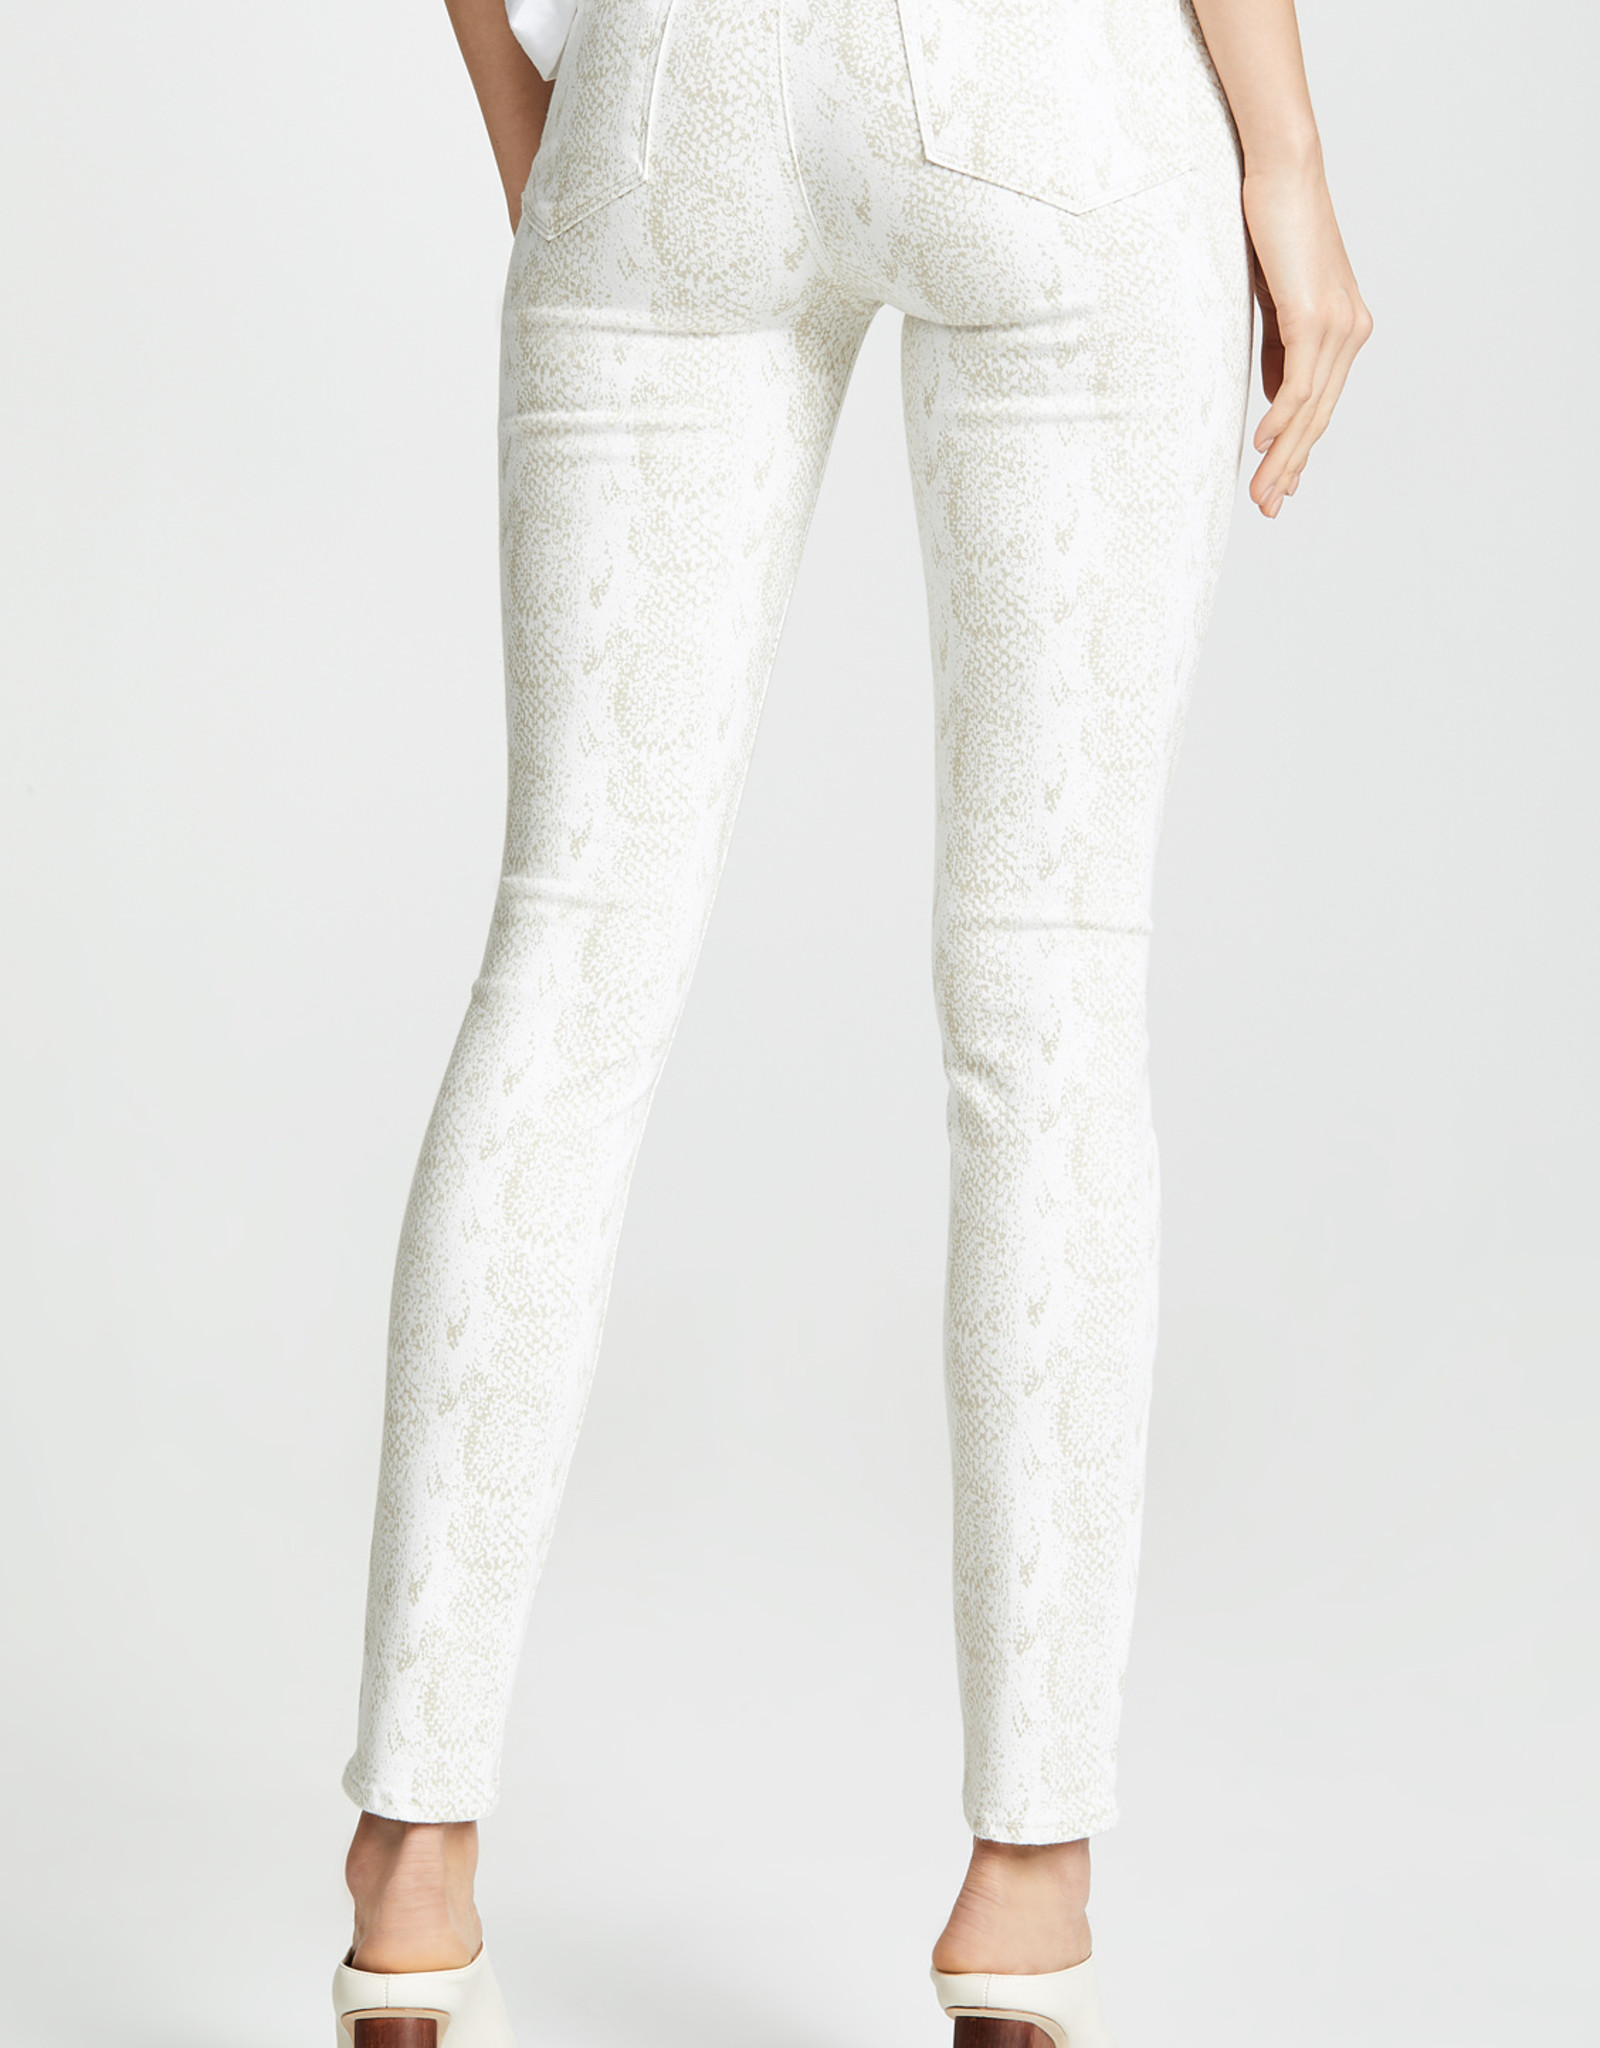 SALE - PAIGE HOXTON ULTRA SKINNY SONORAN SNAKE